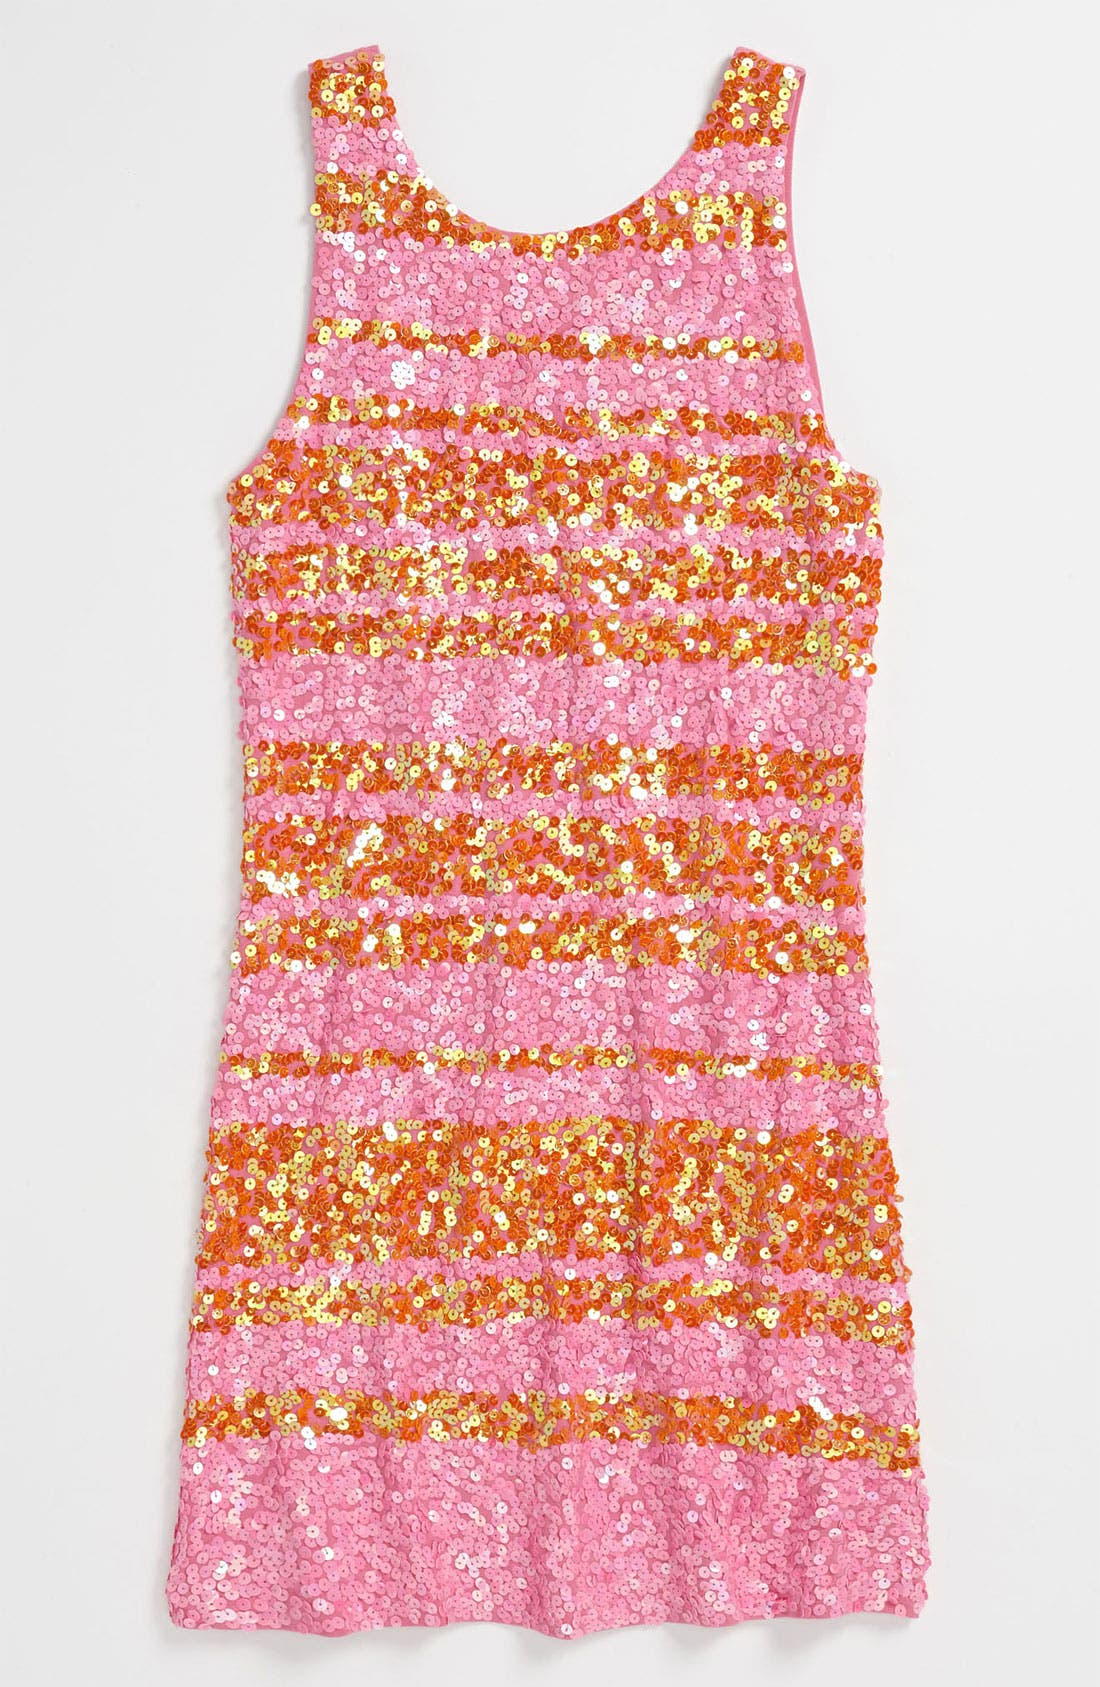 Alternate Image 1 Selected - Flowers by Zoe Sequin Dress (Big Girls)